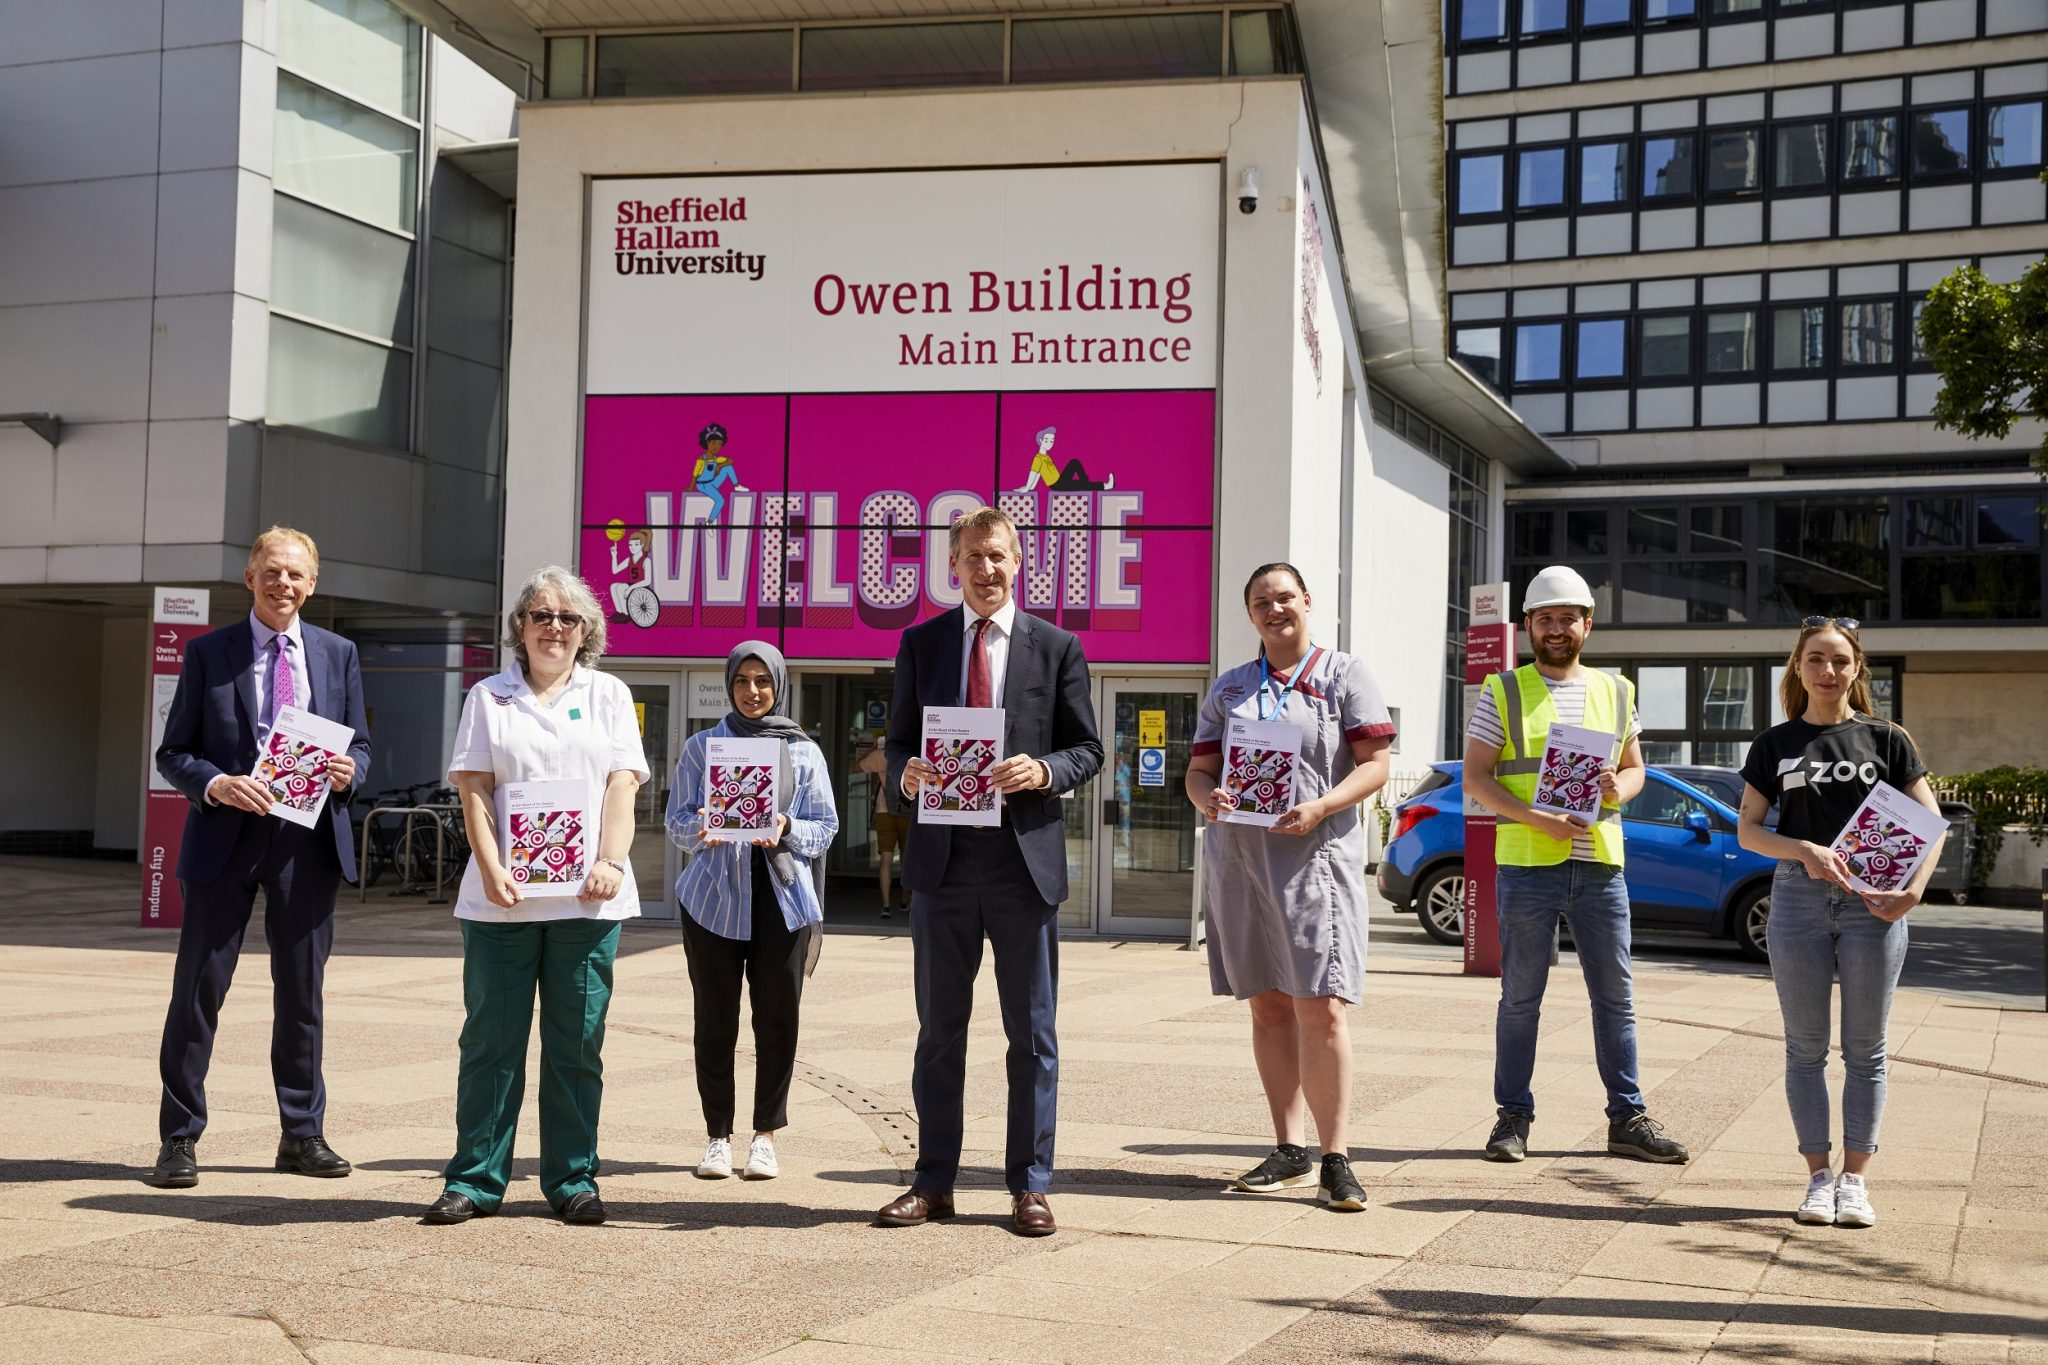 'We want to be a beacon for what a university can do': Sheffield Hallam announce civic agreement